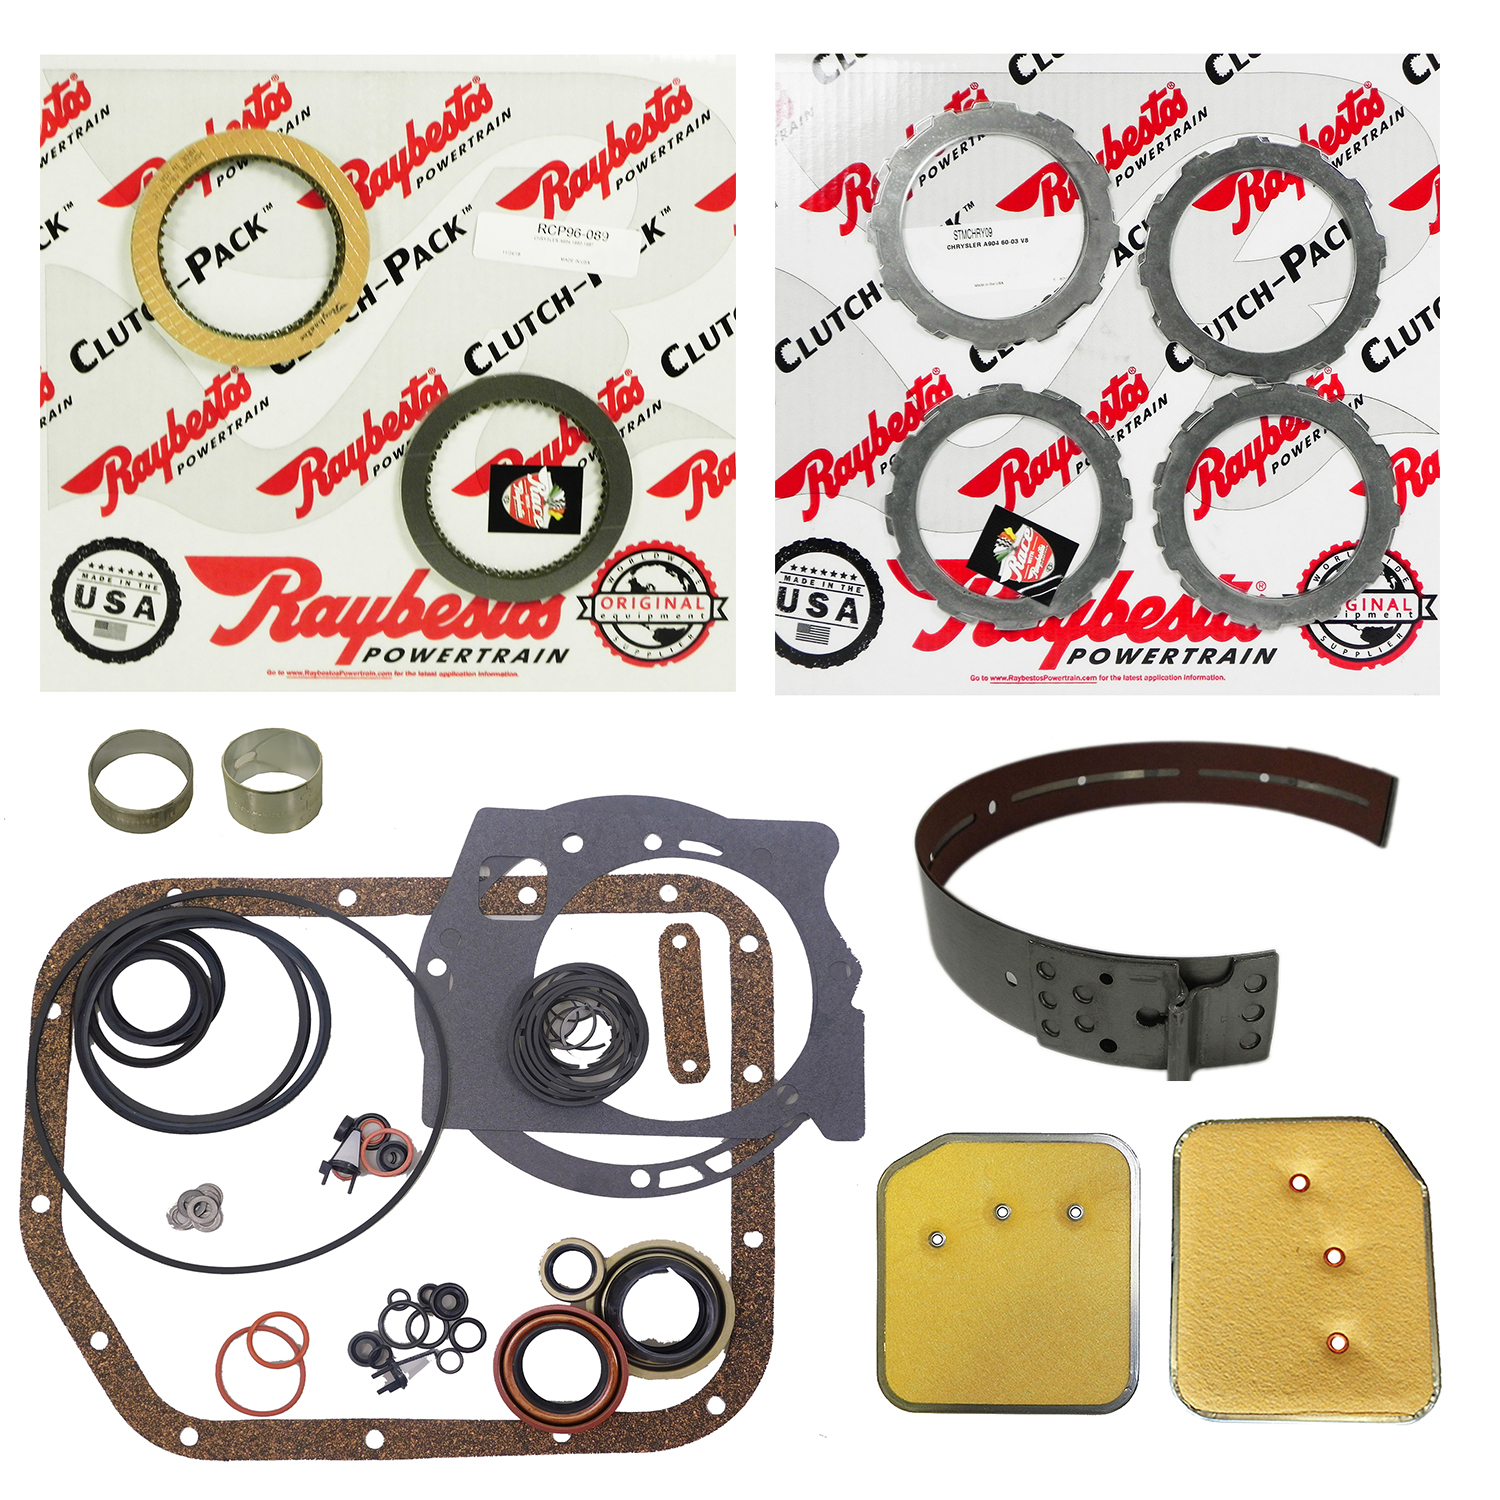 A904 Super Rebuild Kit